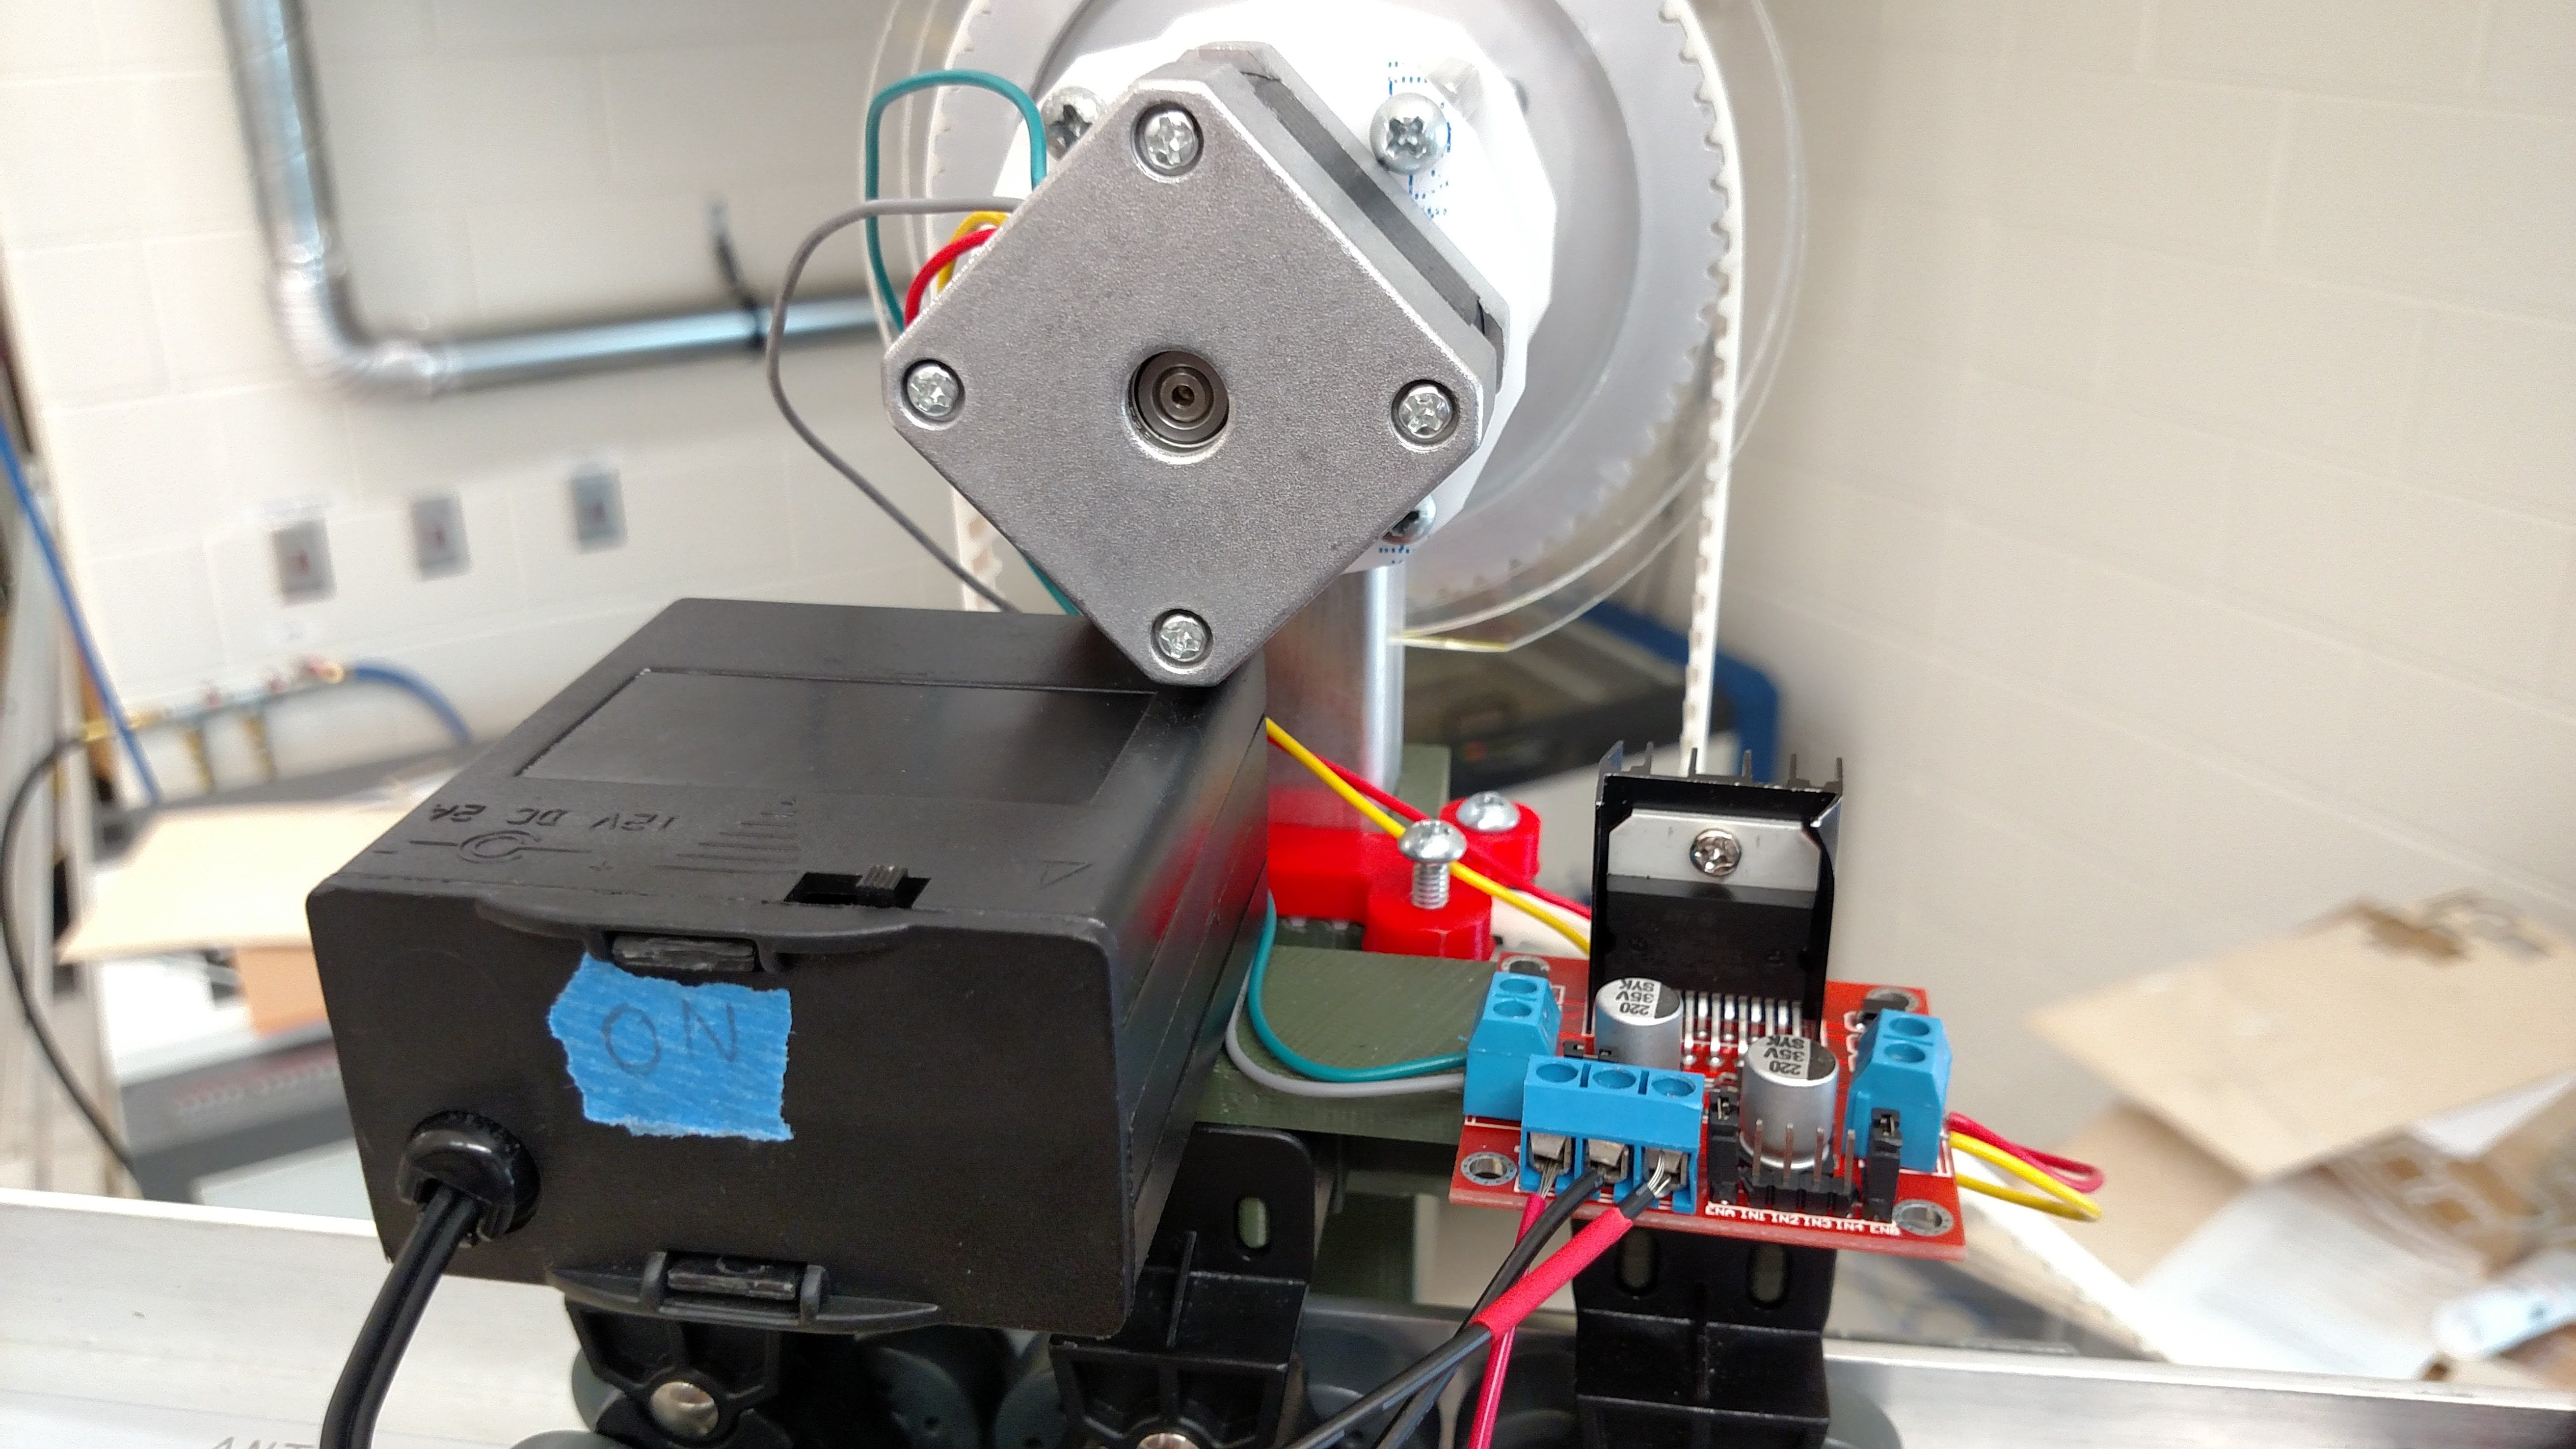 A close up image of the Y control system